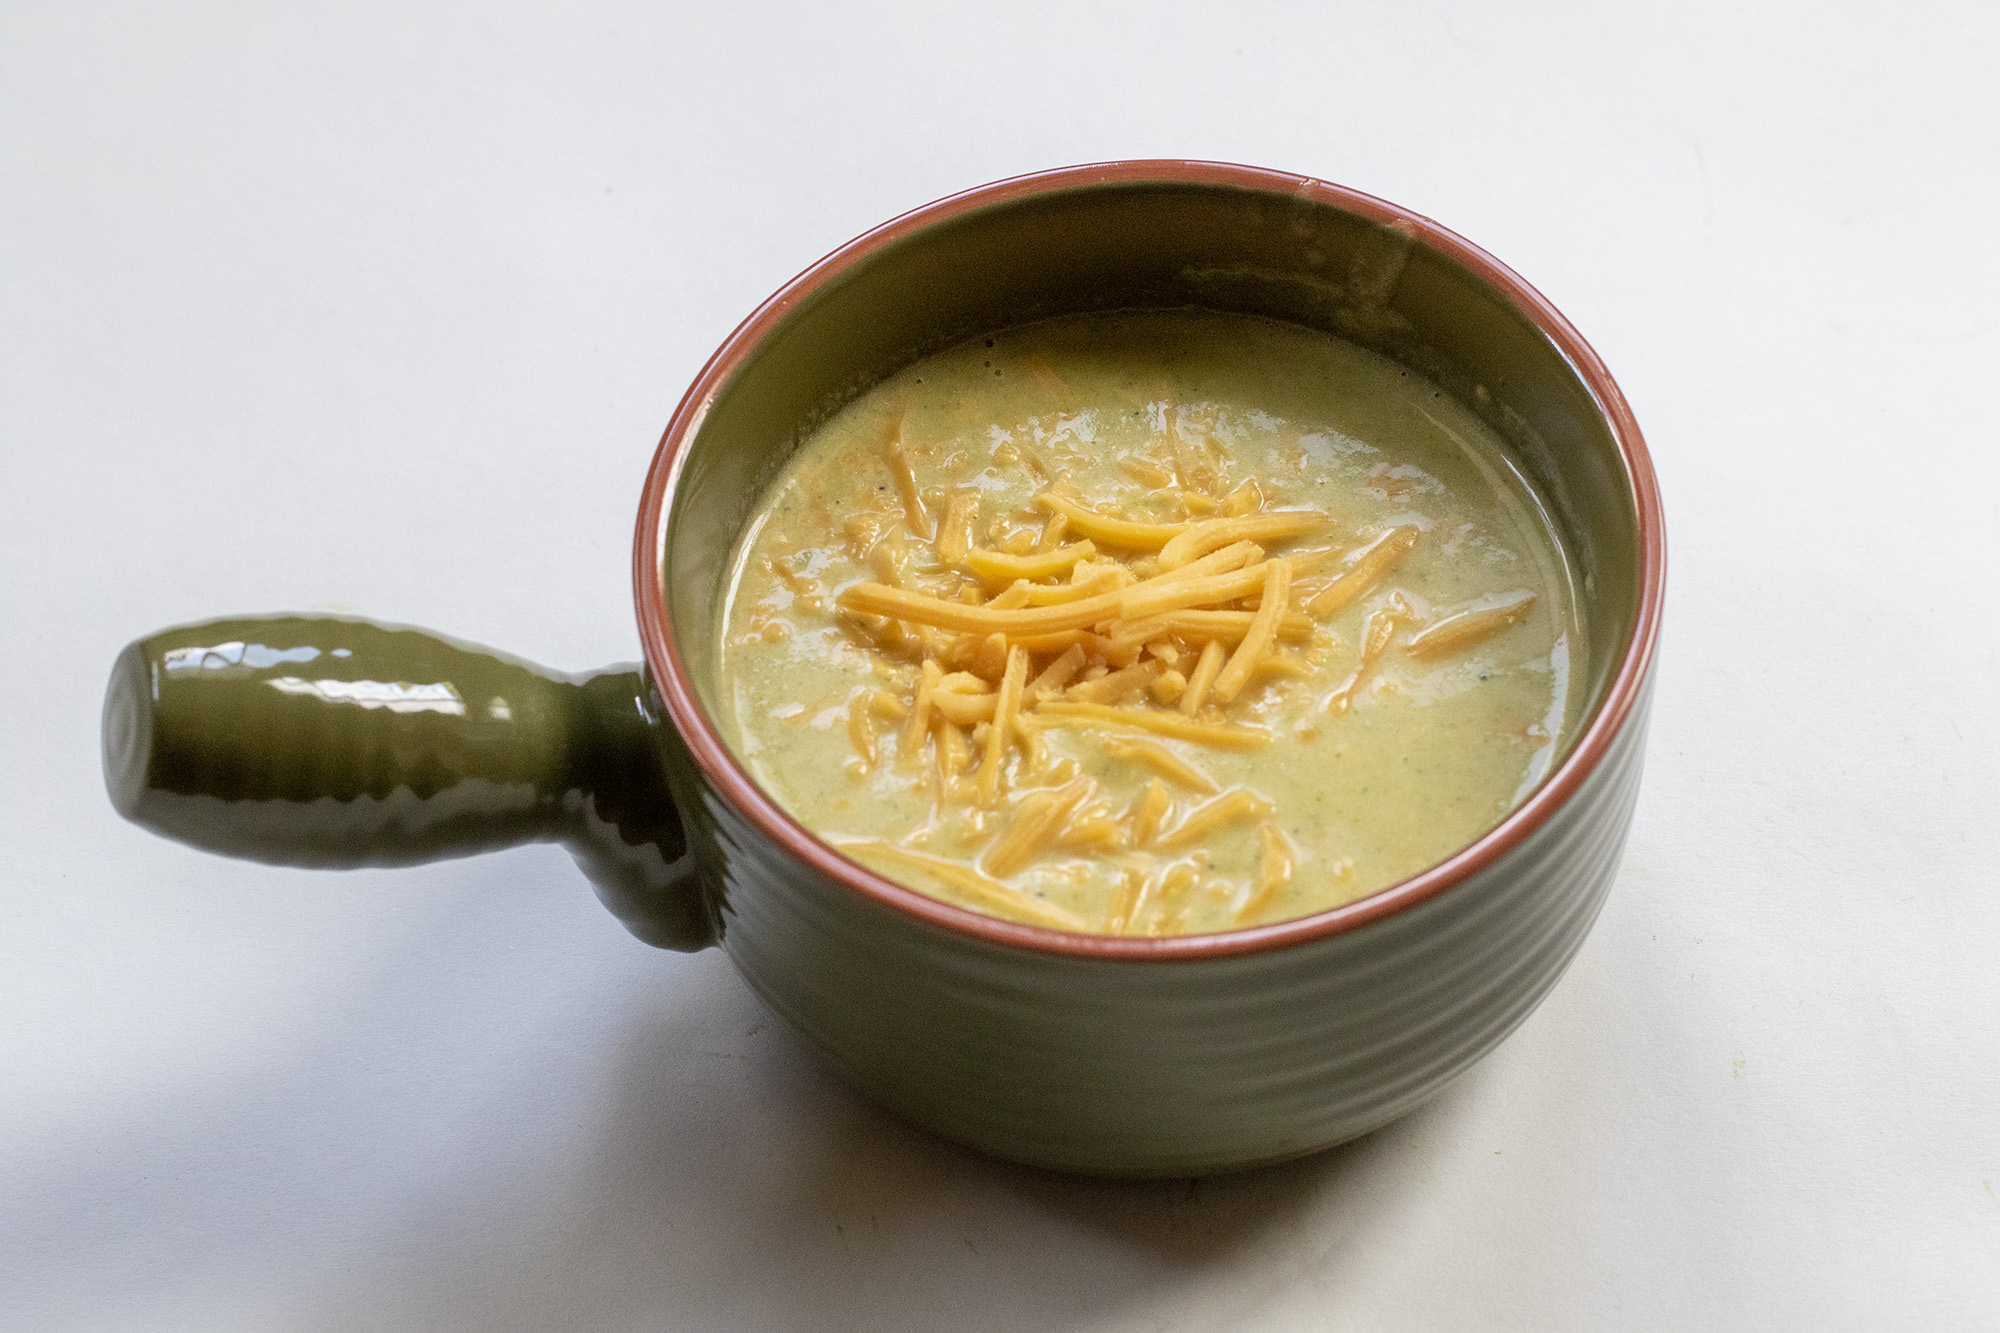 Broccoli Soup in a green bowl topped with shredded cheddar cheese laying on a flat white background.